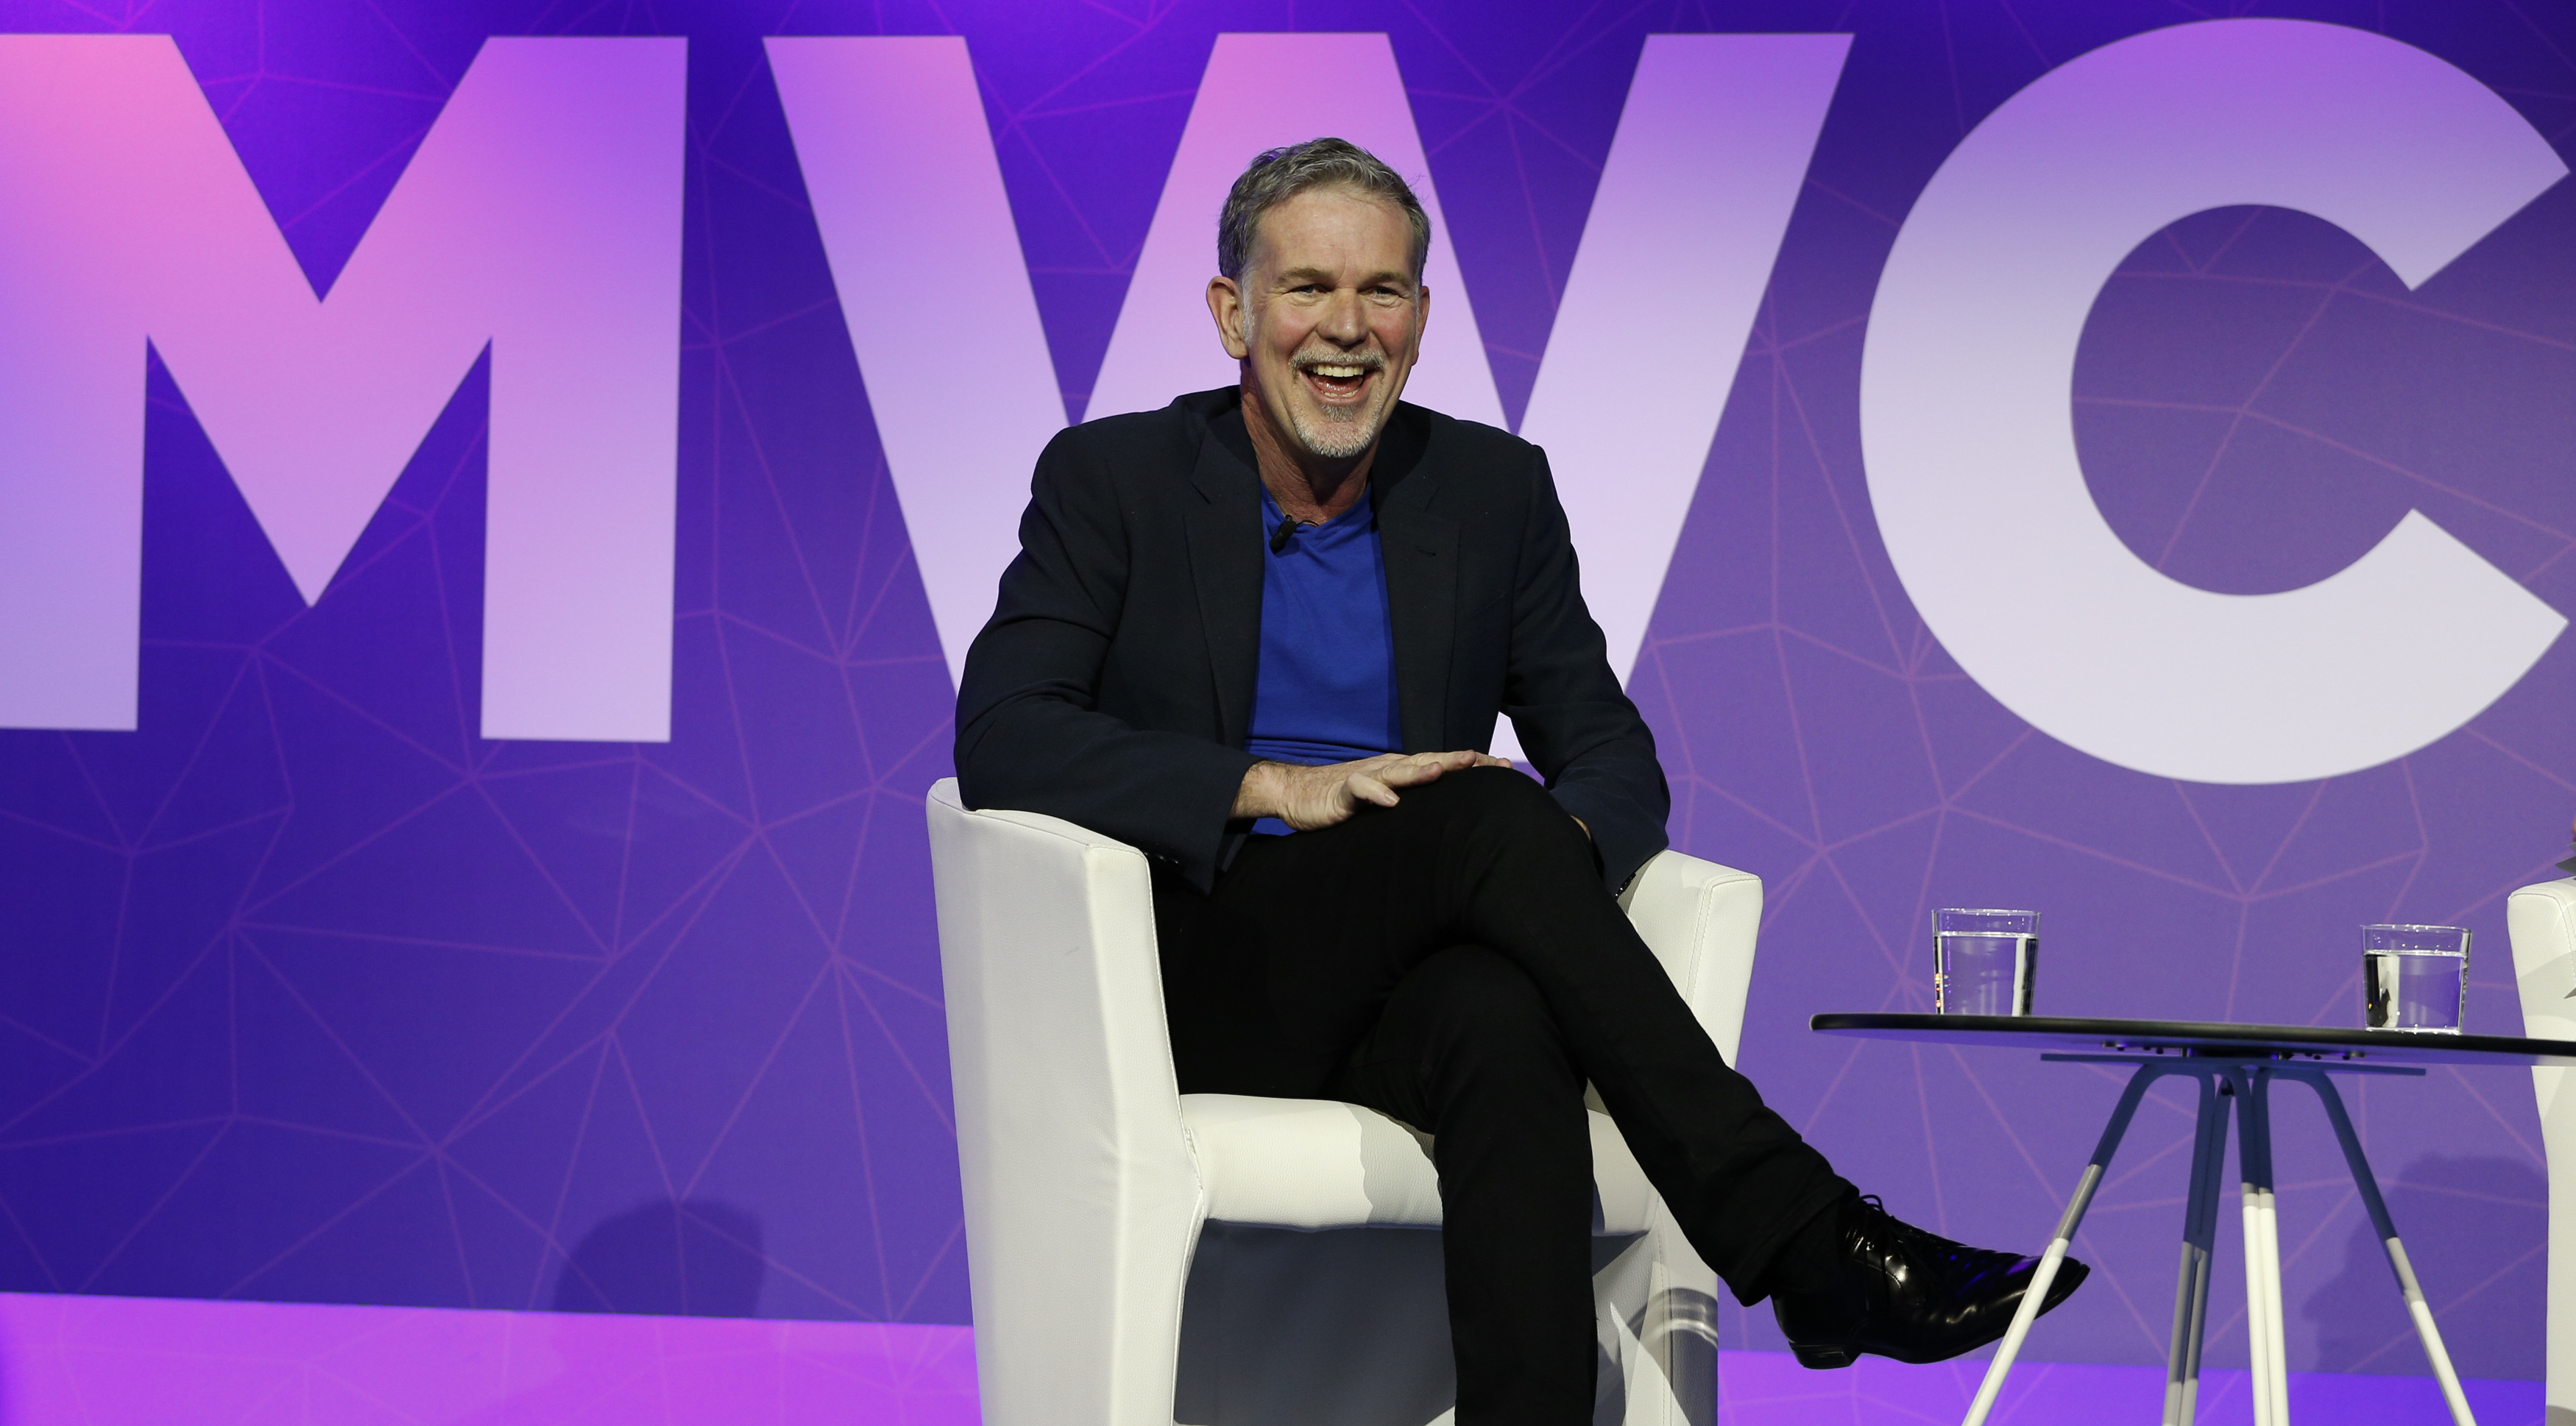 Netflix's CEO Hastings reacts as he delivers his keynote speech during Mobile World Congress in Barcelona